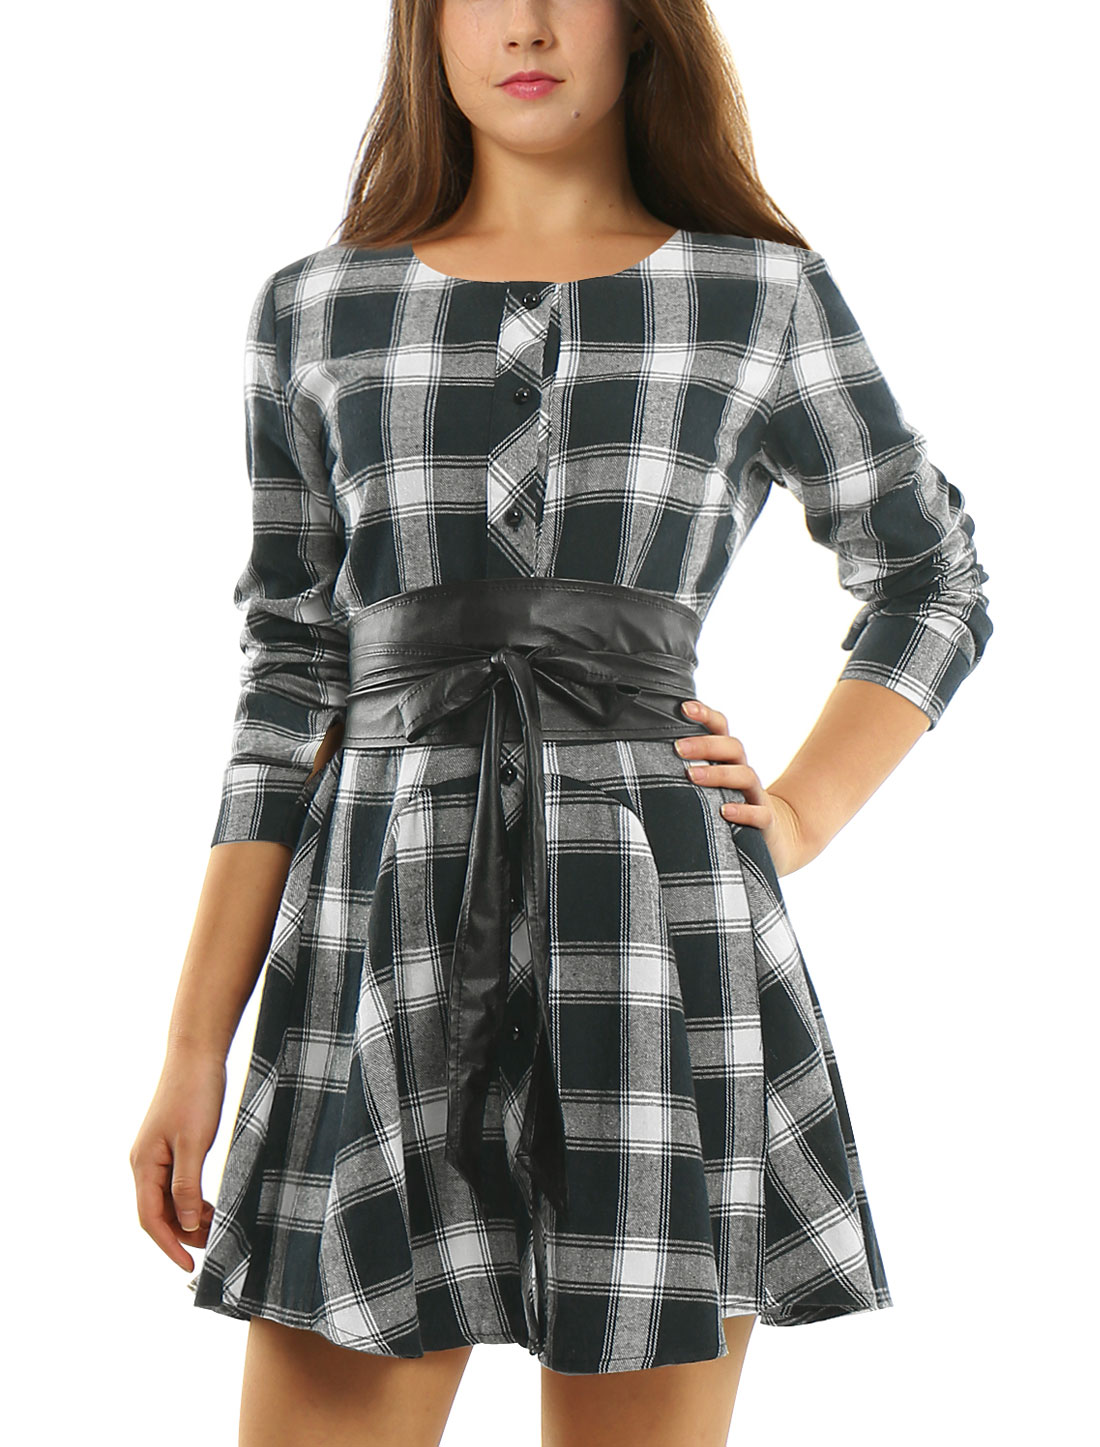 Women Plaids Long Sleeves Belted A Line Shirt Dress Navy Blue White S